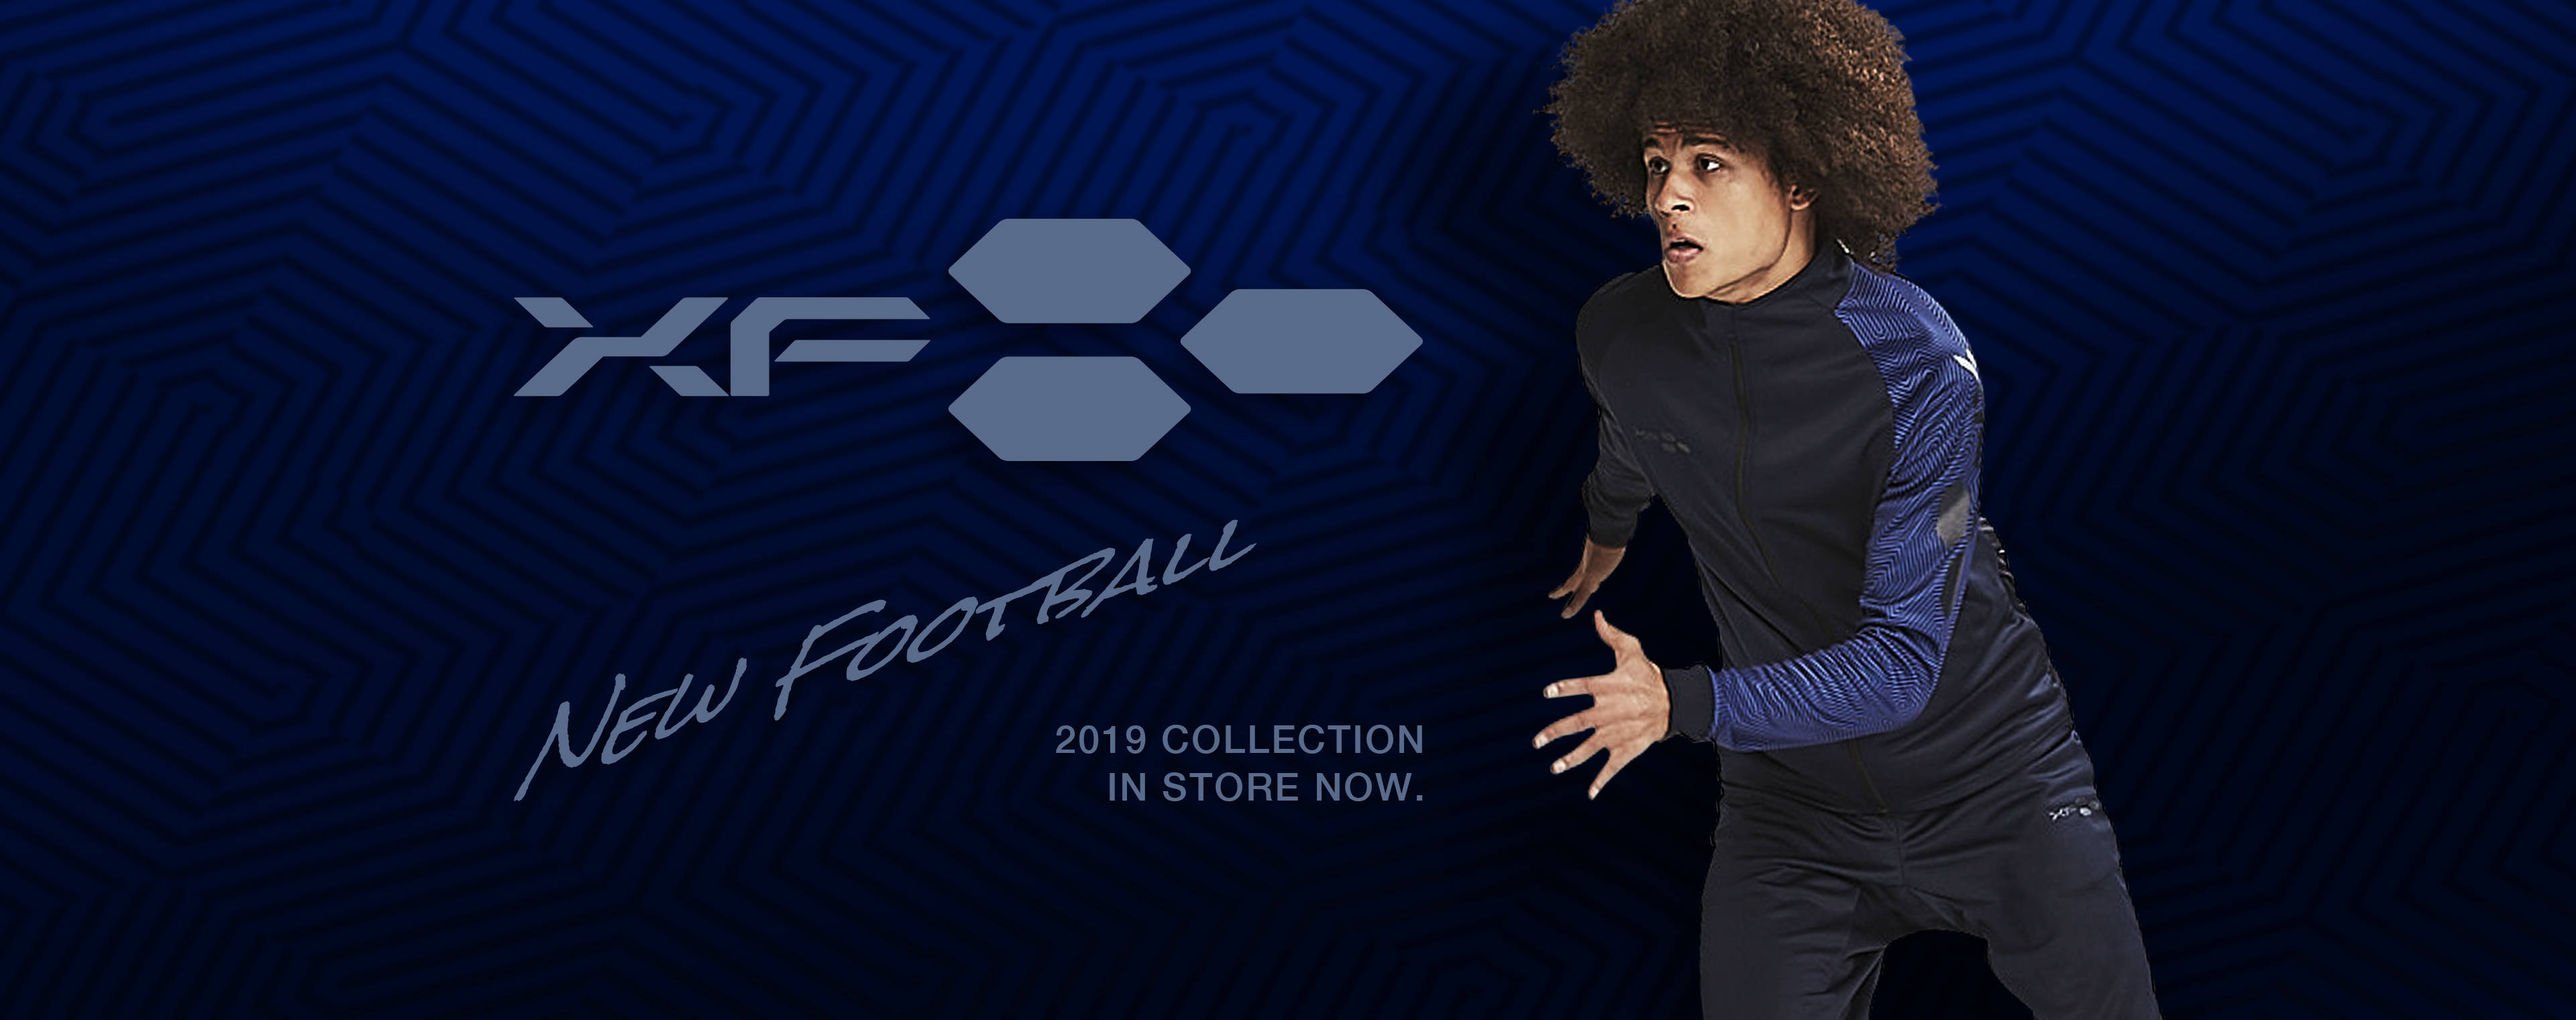 2019 COLLECTION IN STORE NOW